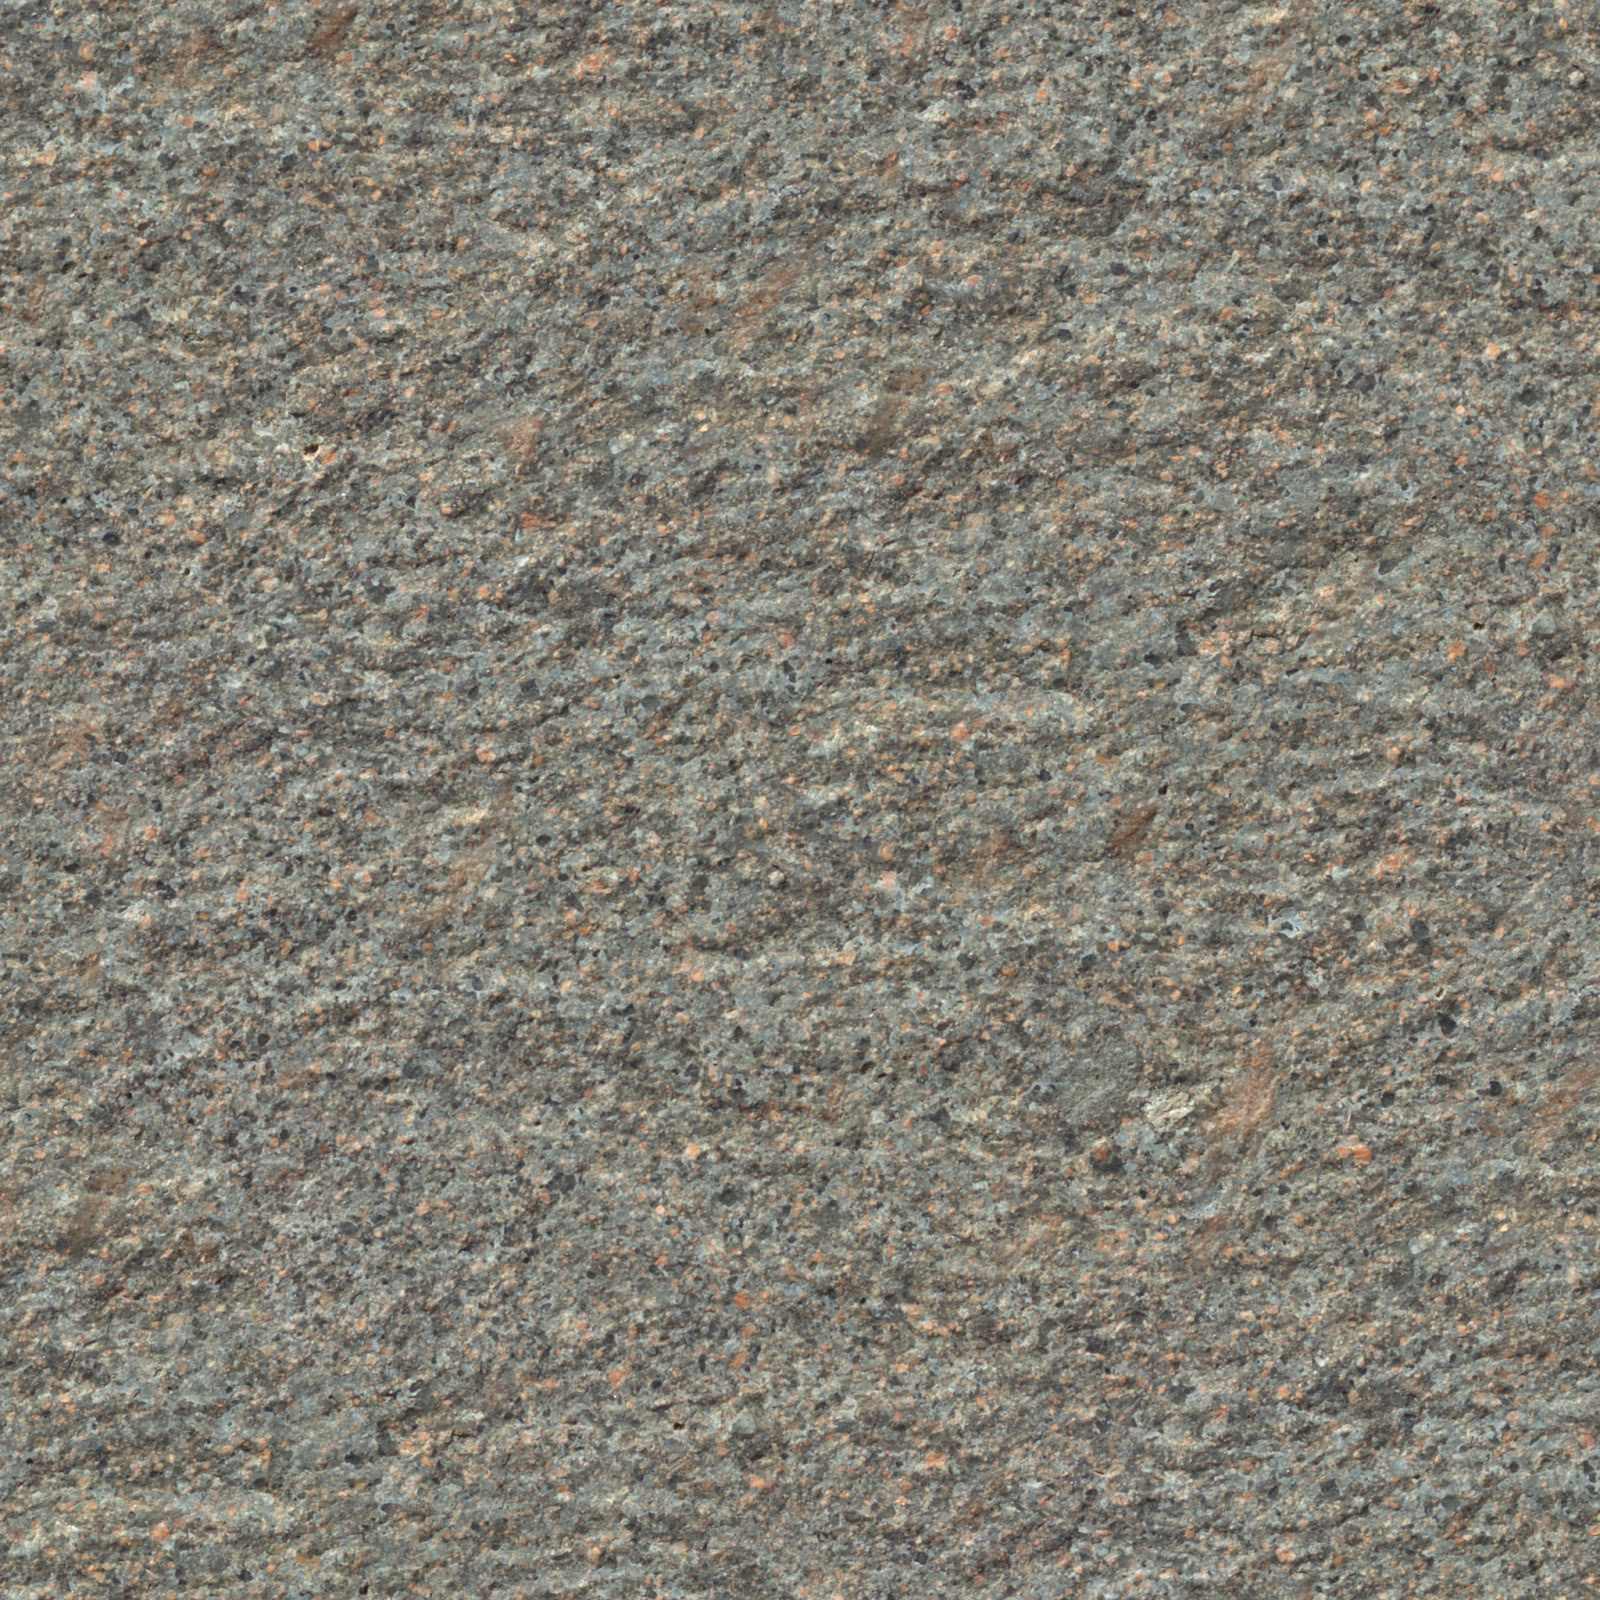 Rock surface detail seamless texture 2048x2048